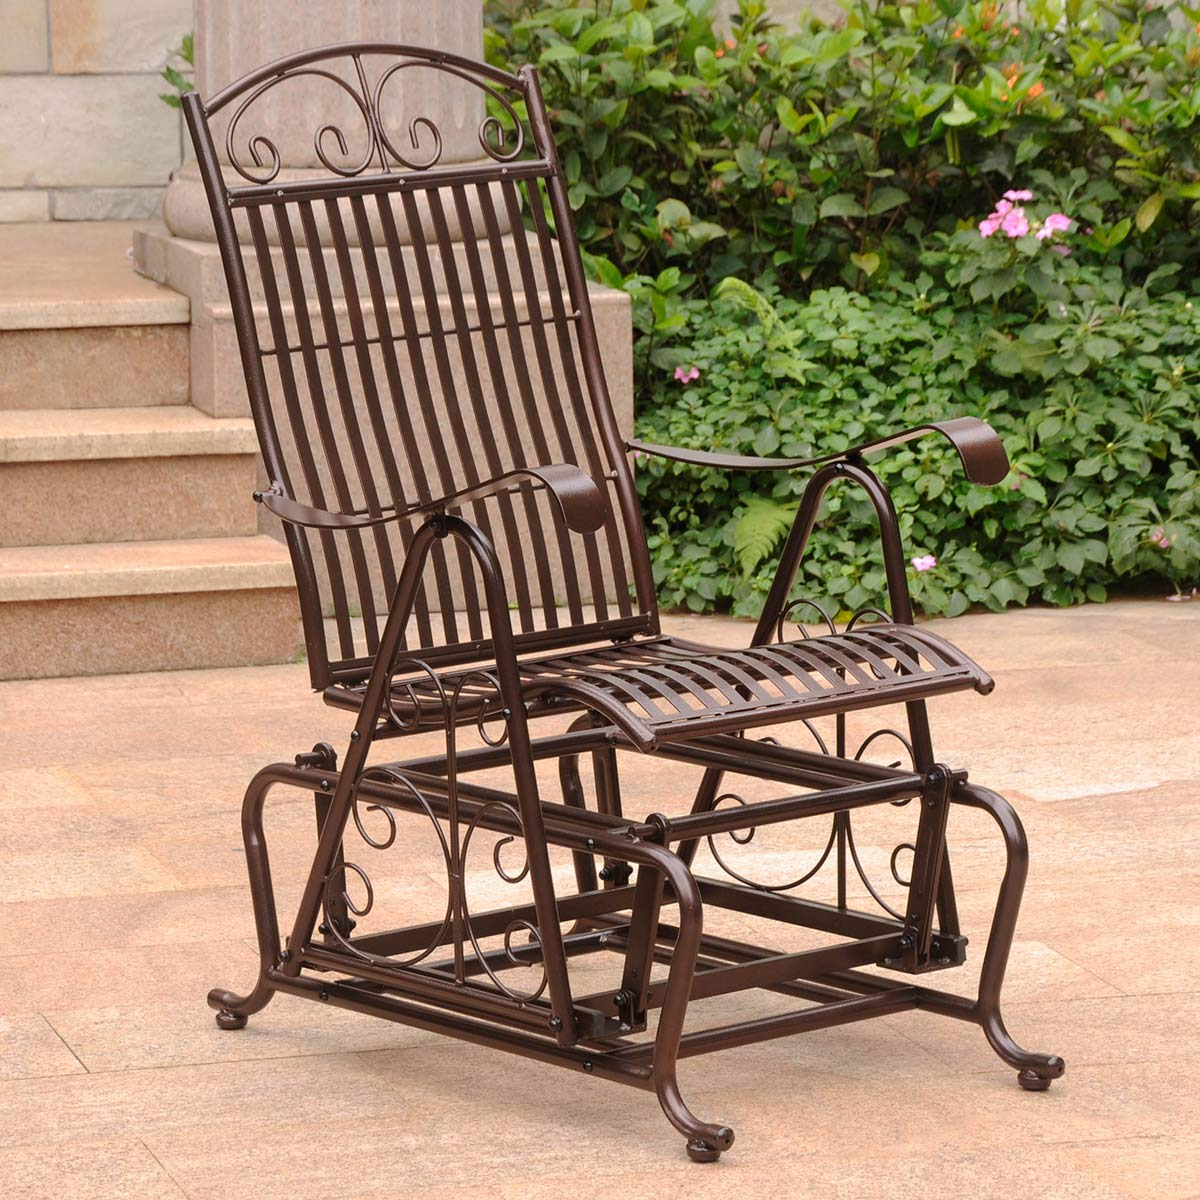 Glider Patio Chairs International Caravan Mandalay Iron Glider Free Shipping